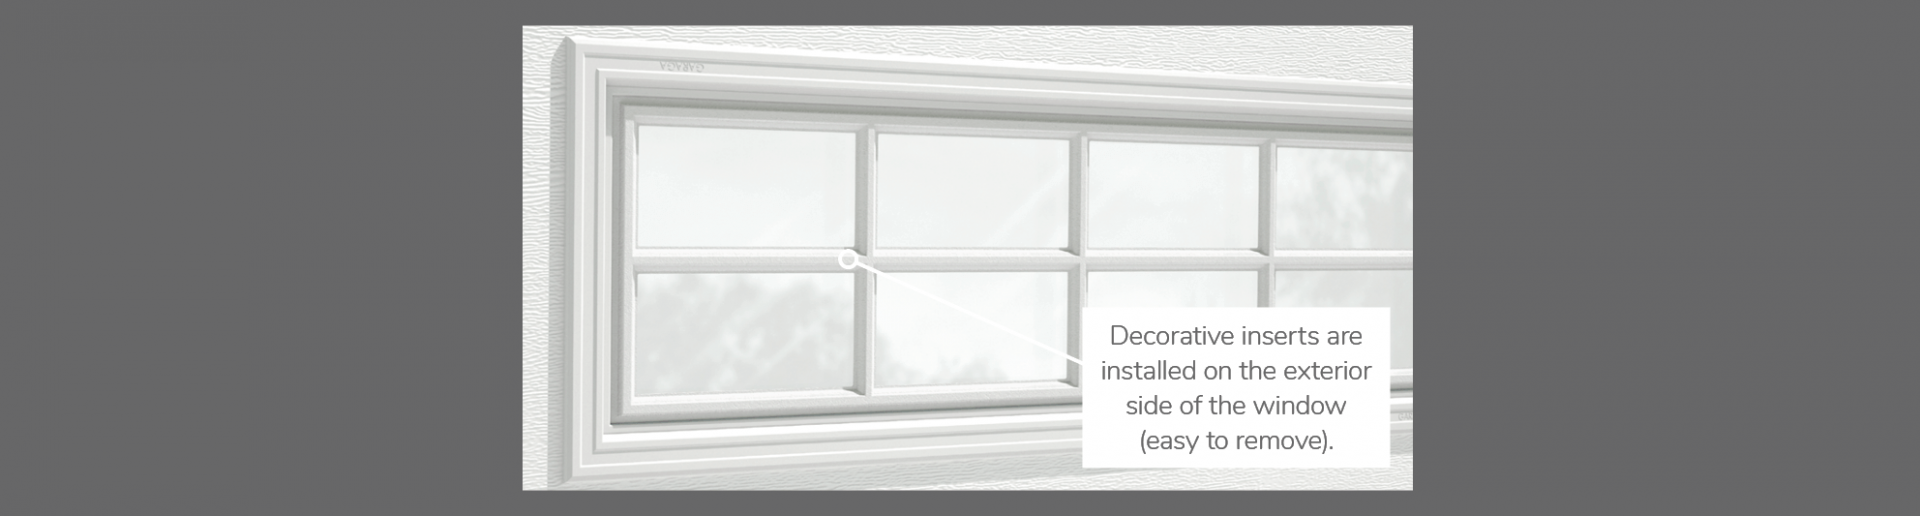 "Stockton Decorative Insert, 40"" x 13"", available for door R-16"